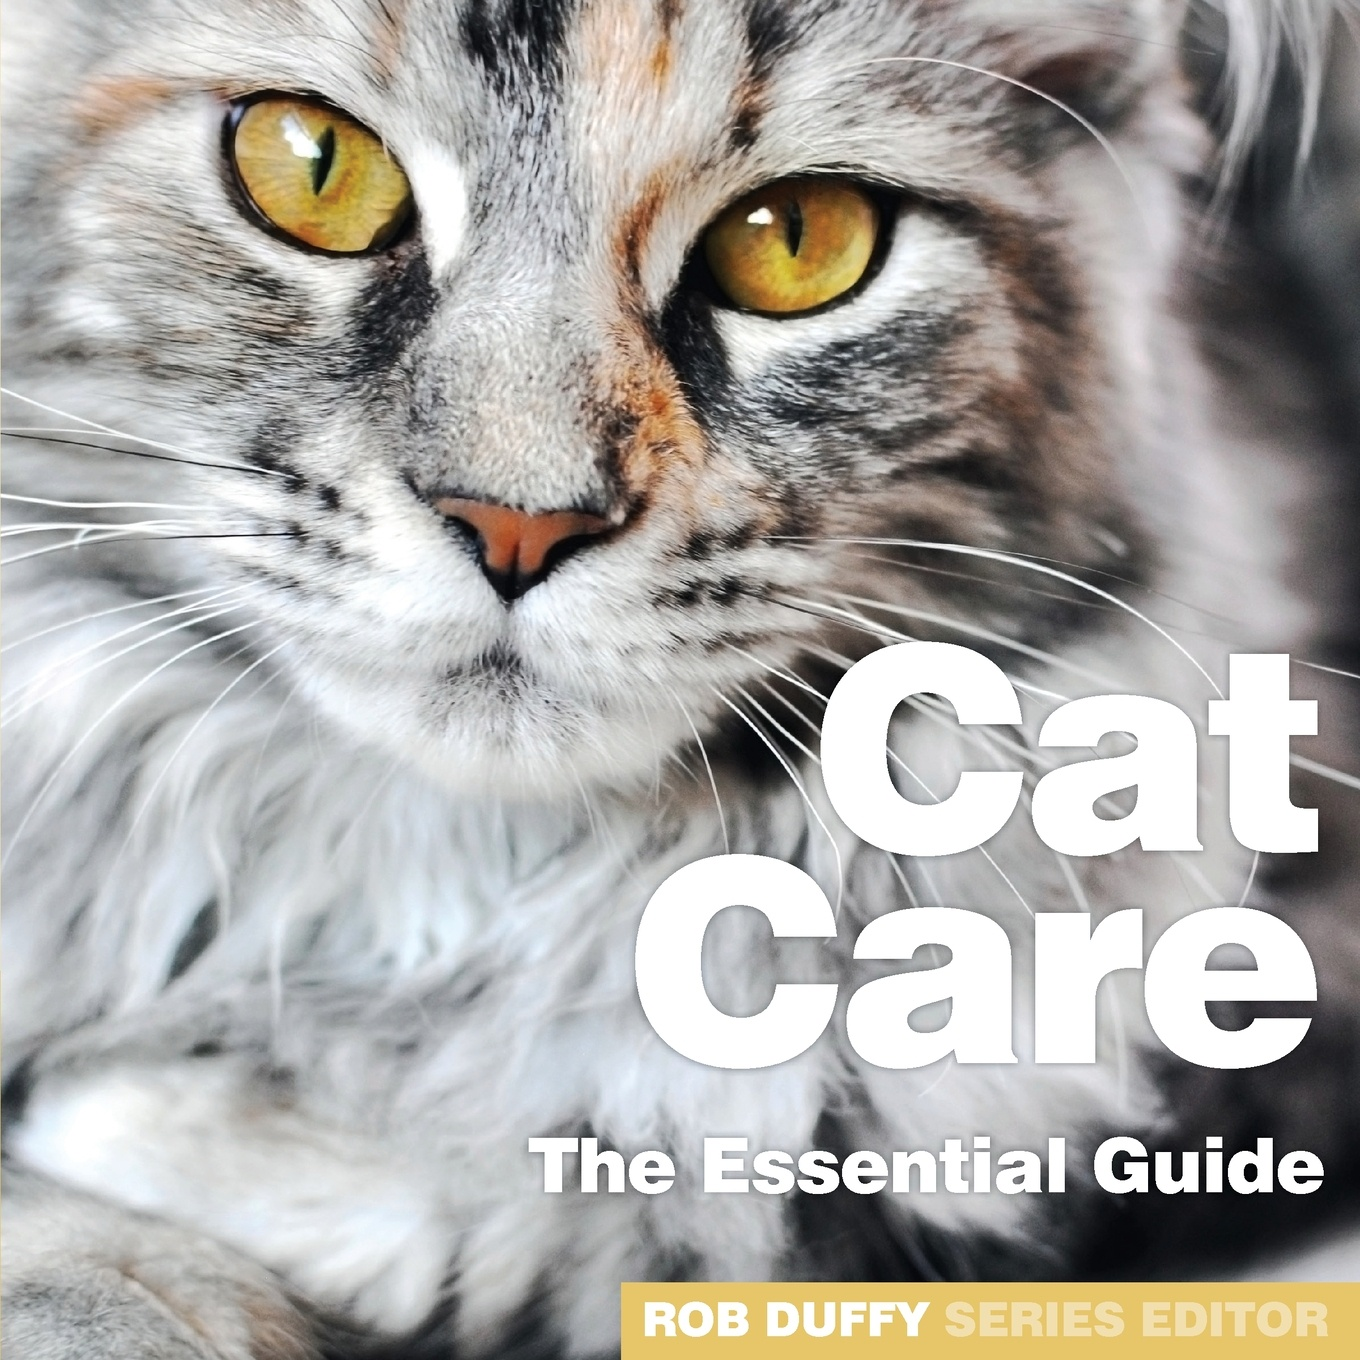 Cat Care. The Essential Guide kull v3 cat and the skull